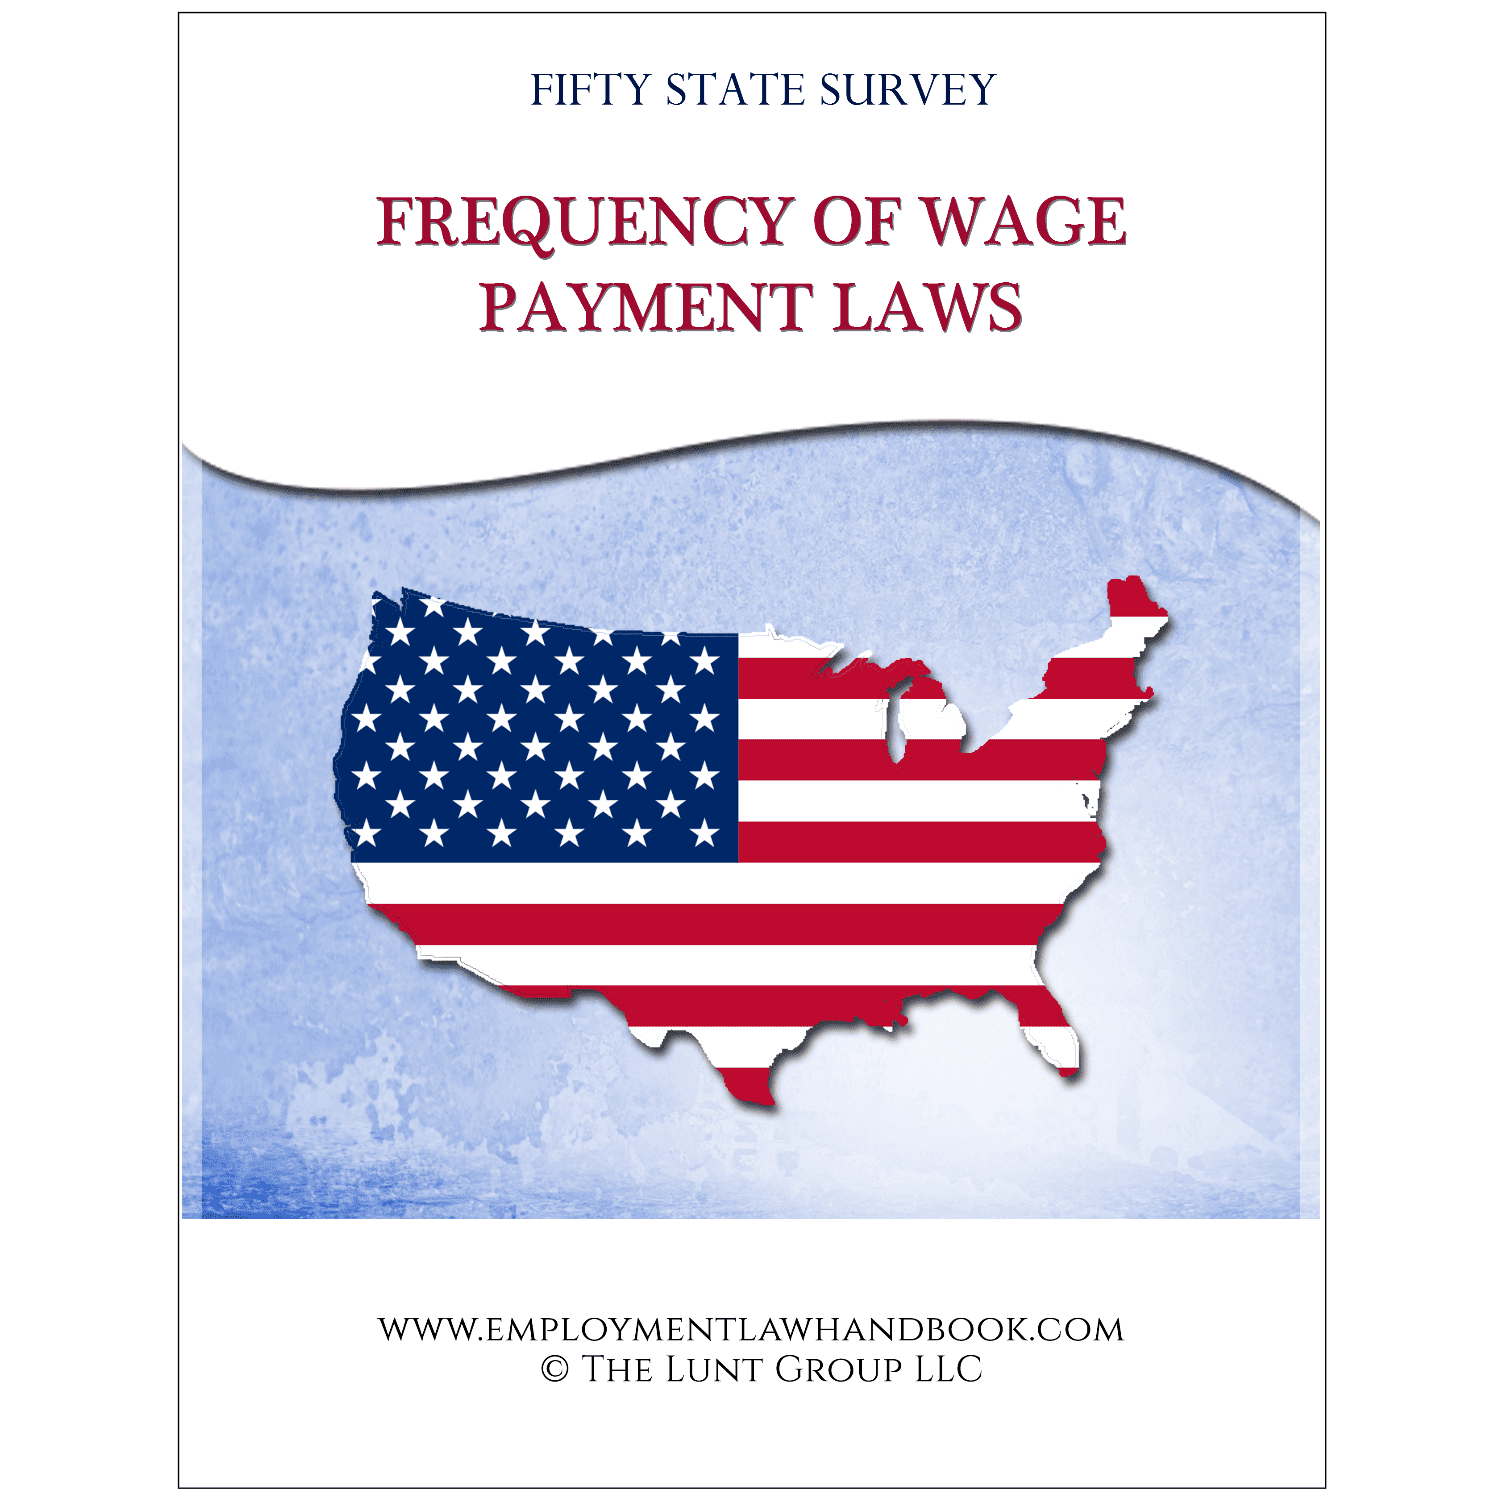 Frequency of Wage Payment Laws - Portrait_sq